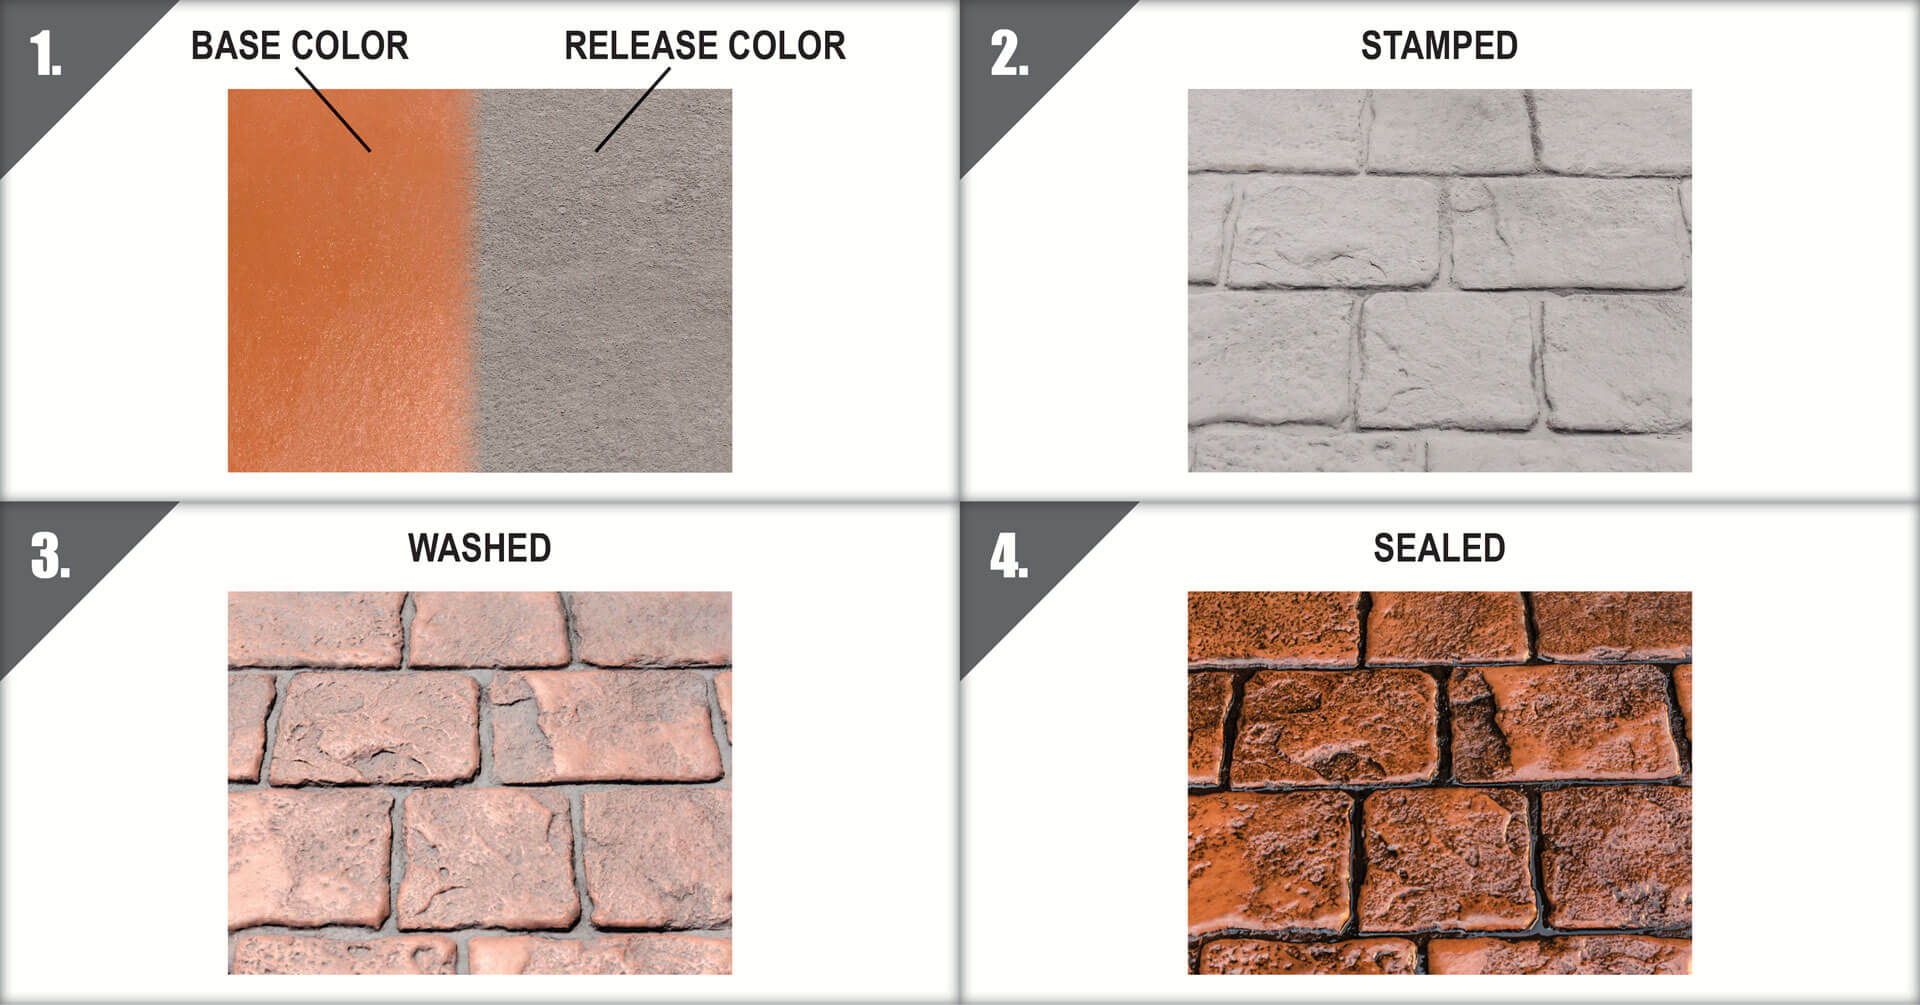 What You Need to Know About the Stamped Concrete Process